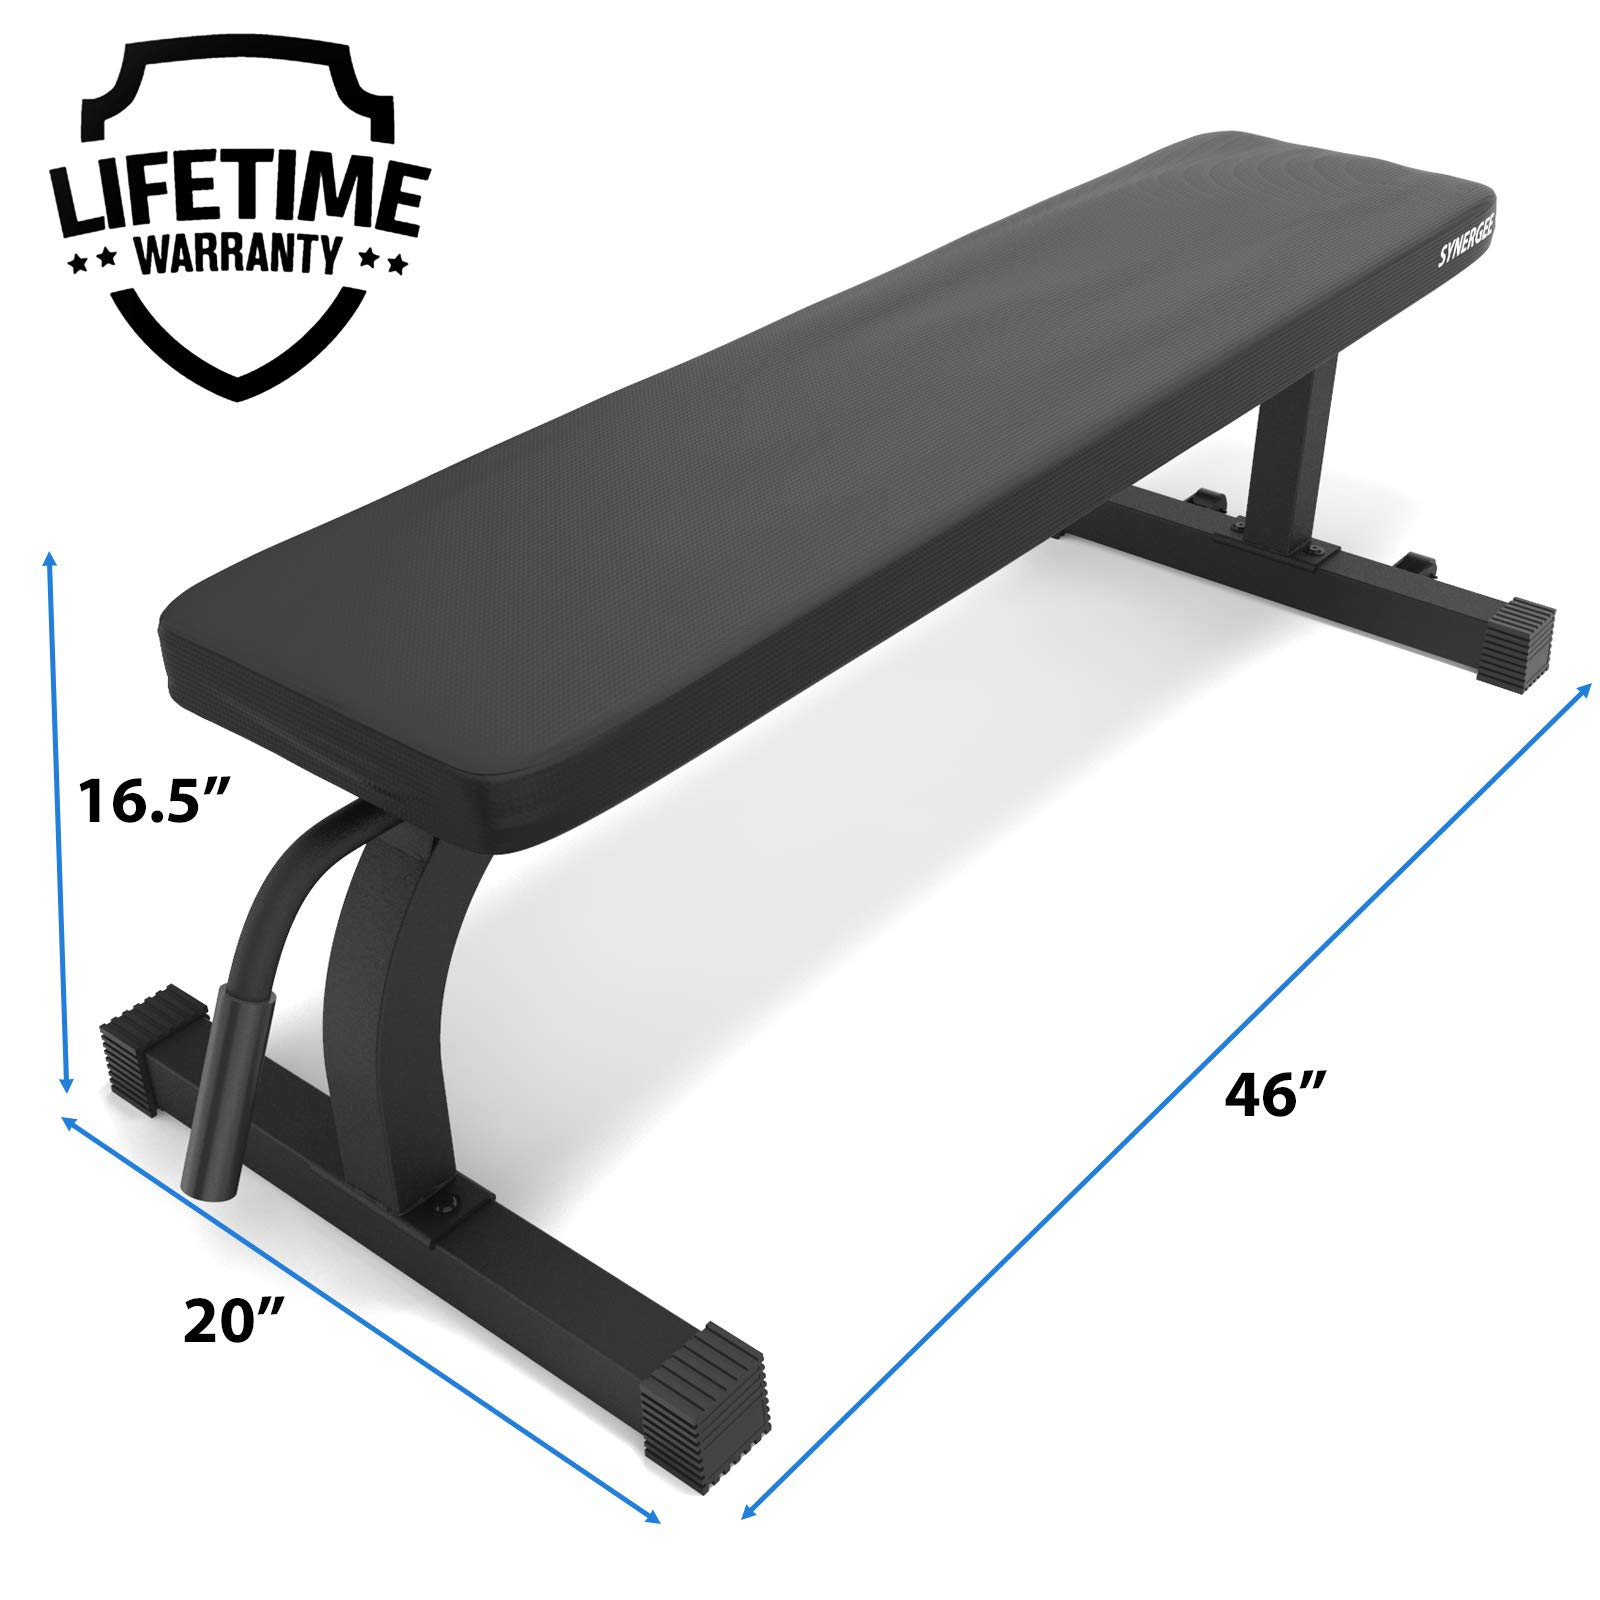 Synergee Flat Bench Workout Bench -Perfect for Pressing Exercises - Weight Bench for Dumbbell & Barbell Press Workouts - Great for Commercial, Garage and Home Gym by Synergee